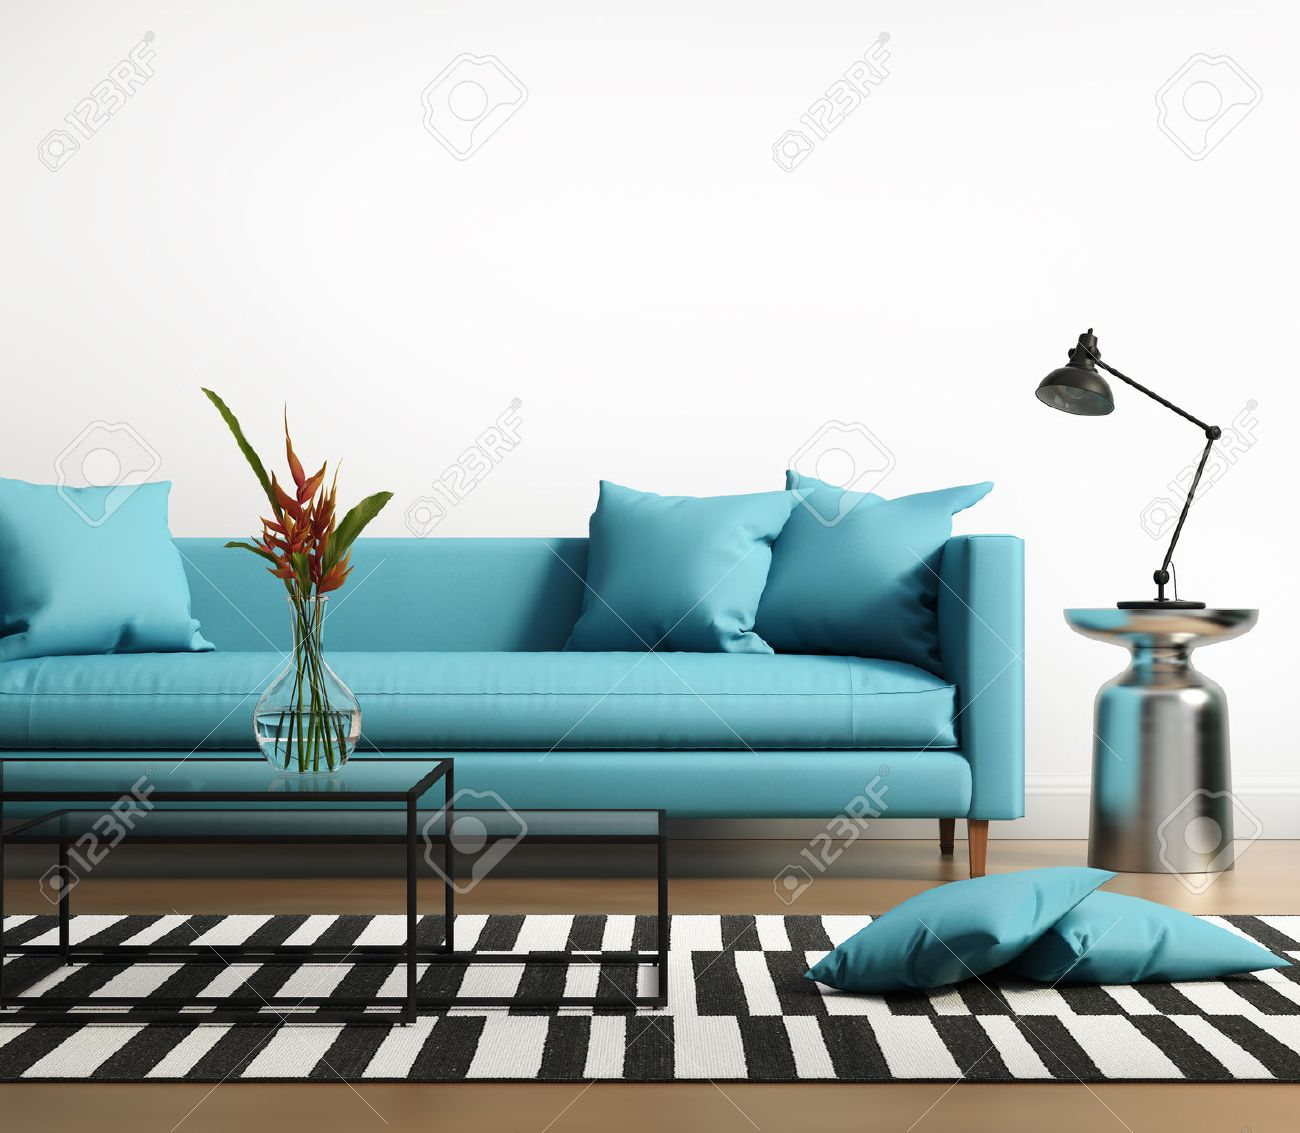 modern interior with a blue turqoise sofa in the living room foto